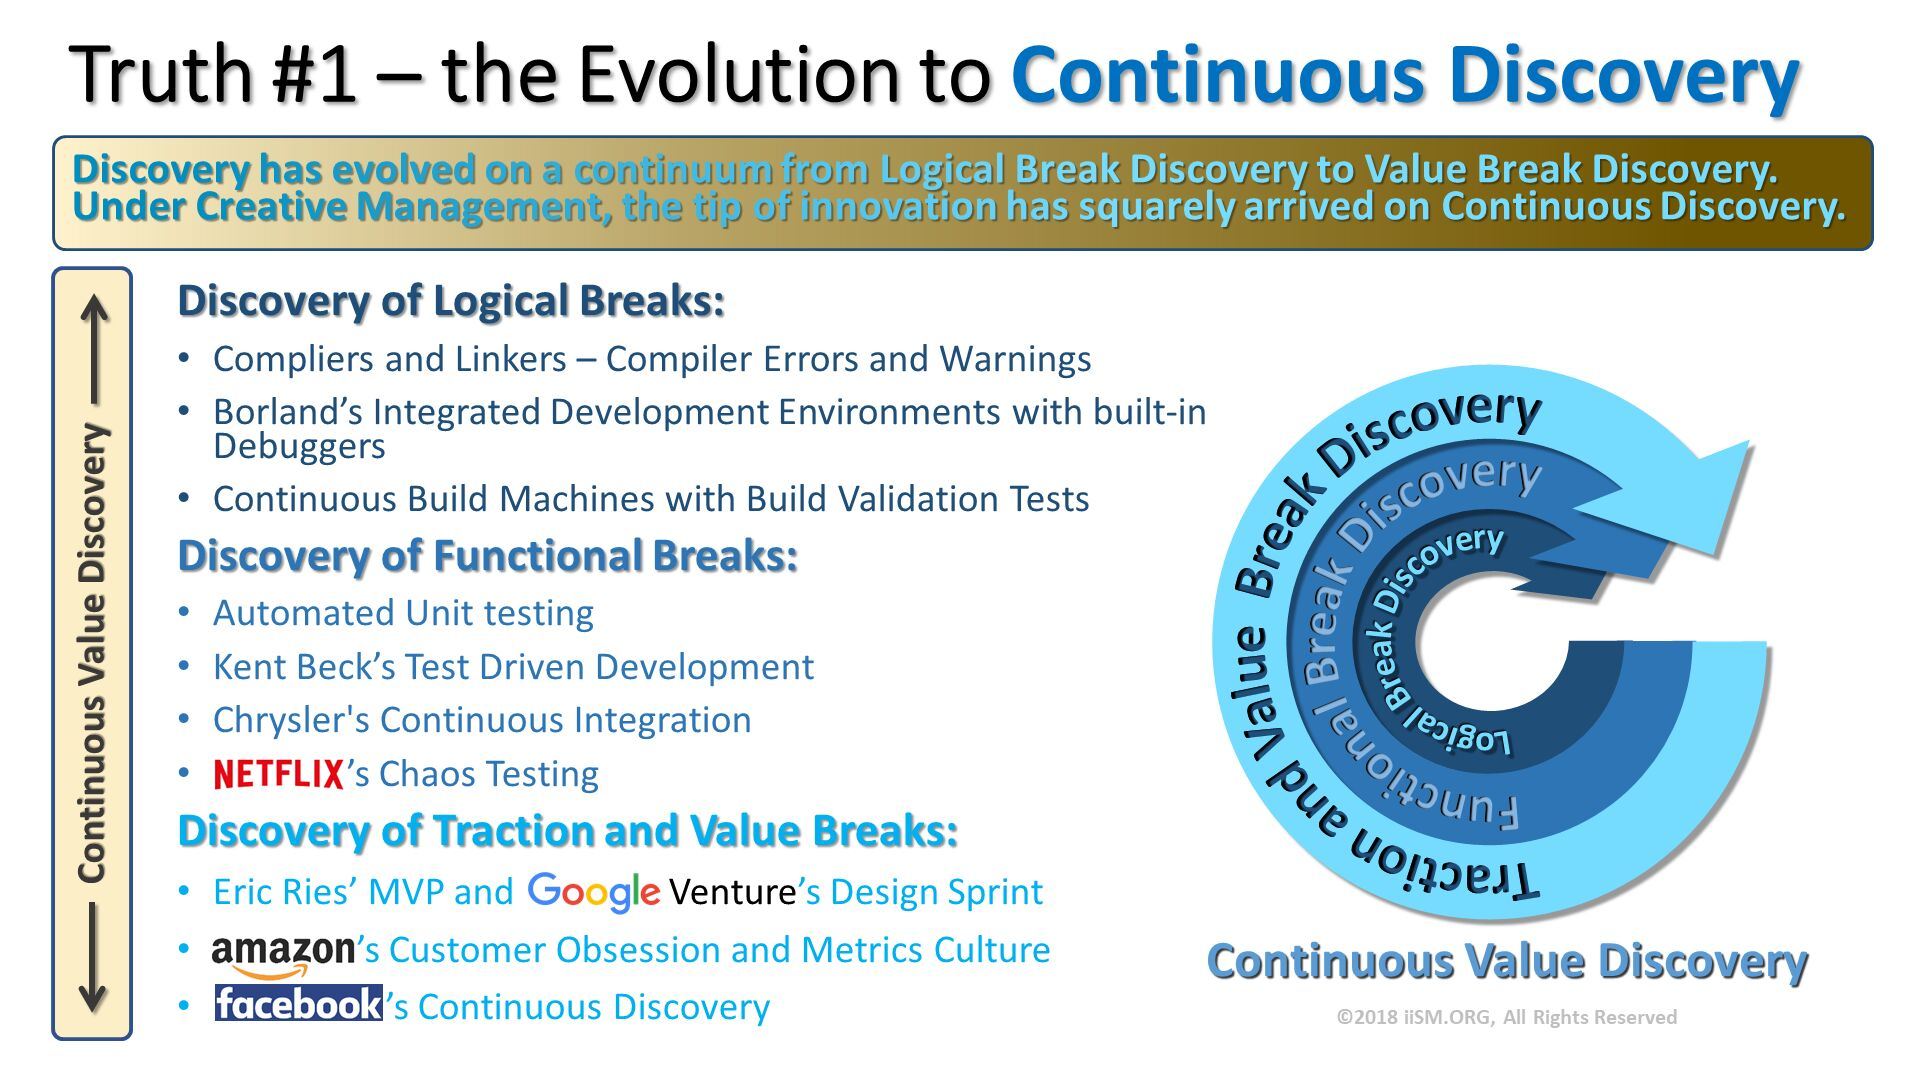 Truth #1 – the Evolution to Continuous Discovery. Discovery of Logical Breaks: Compliers and Linkers – Compiler Errors and Warnings Borland's Integrated Development Environments with built-in Debuggers Continuous Build Machines with Build Validation Tests Discovery of Functional Breaks: Automated Unit testing Kent Beck's Test Driven Development Chrysler's Continuous Integration NETFLIX's Chaos Testing  Discovery of Traction and Value Breaks: Eric Ries' MVP and                 Venture's Design Sprint                 's Customer Obsession and Metrics Culture Facebook  's Continuous Discovery. Discovery has evolved on a continuum from Logical Break Discovery to Value Break Discovery.  Under Creative Management, the tip of innovation has squarely arrived on Continuous Discovery.